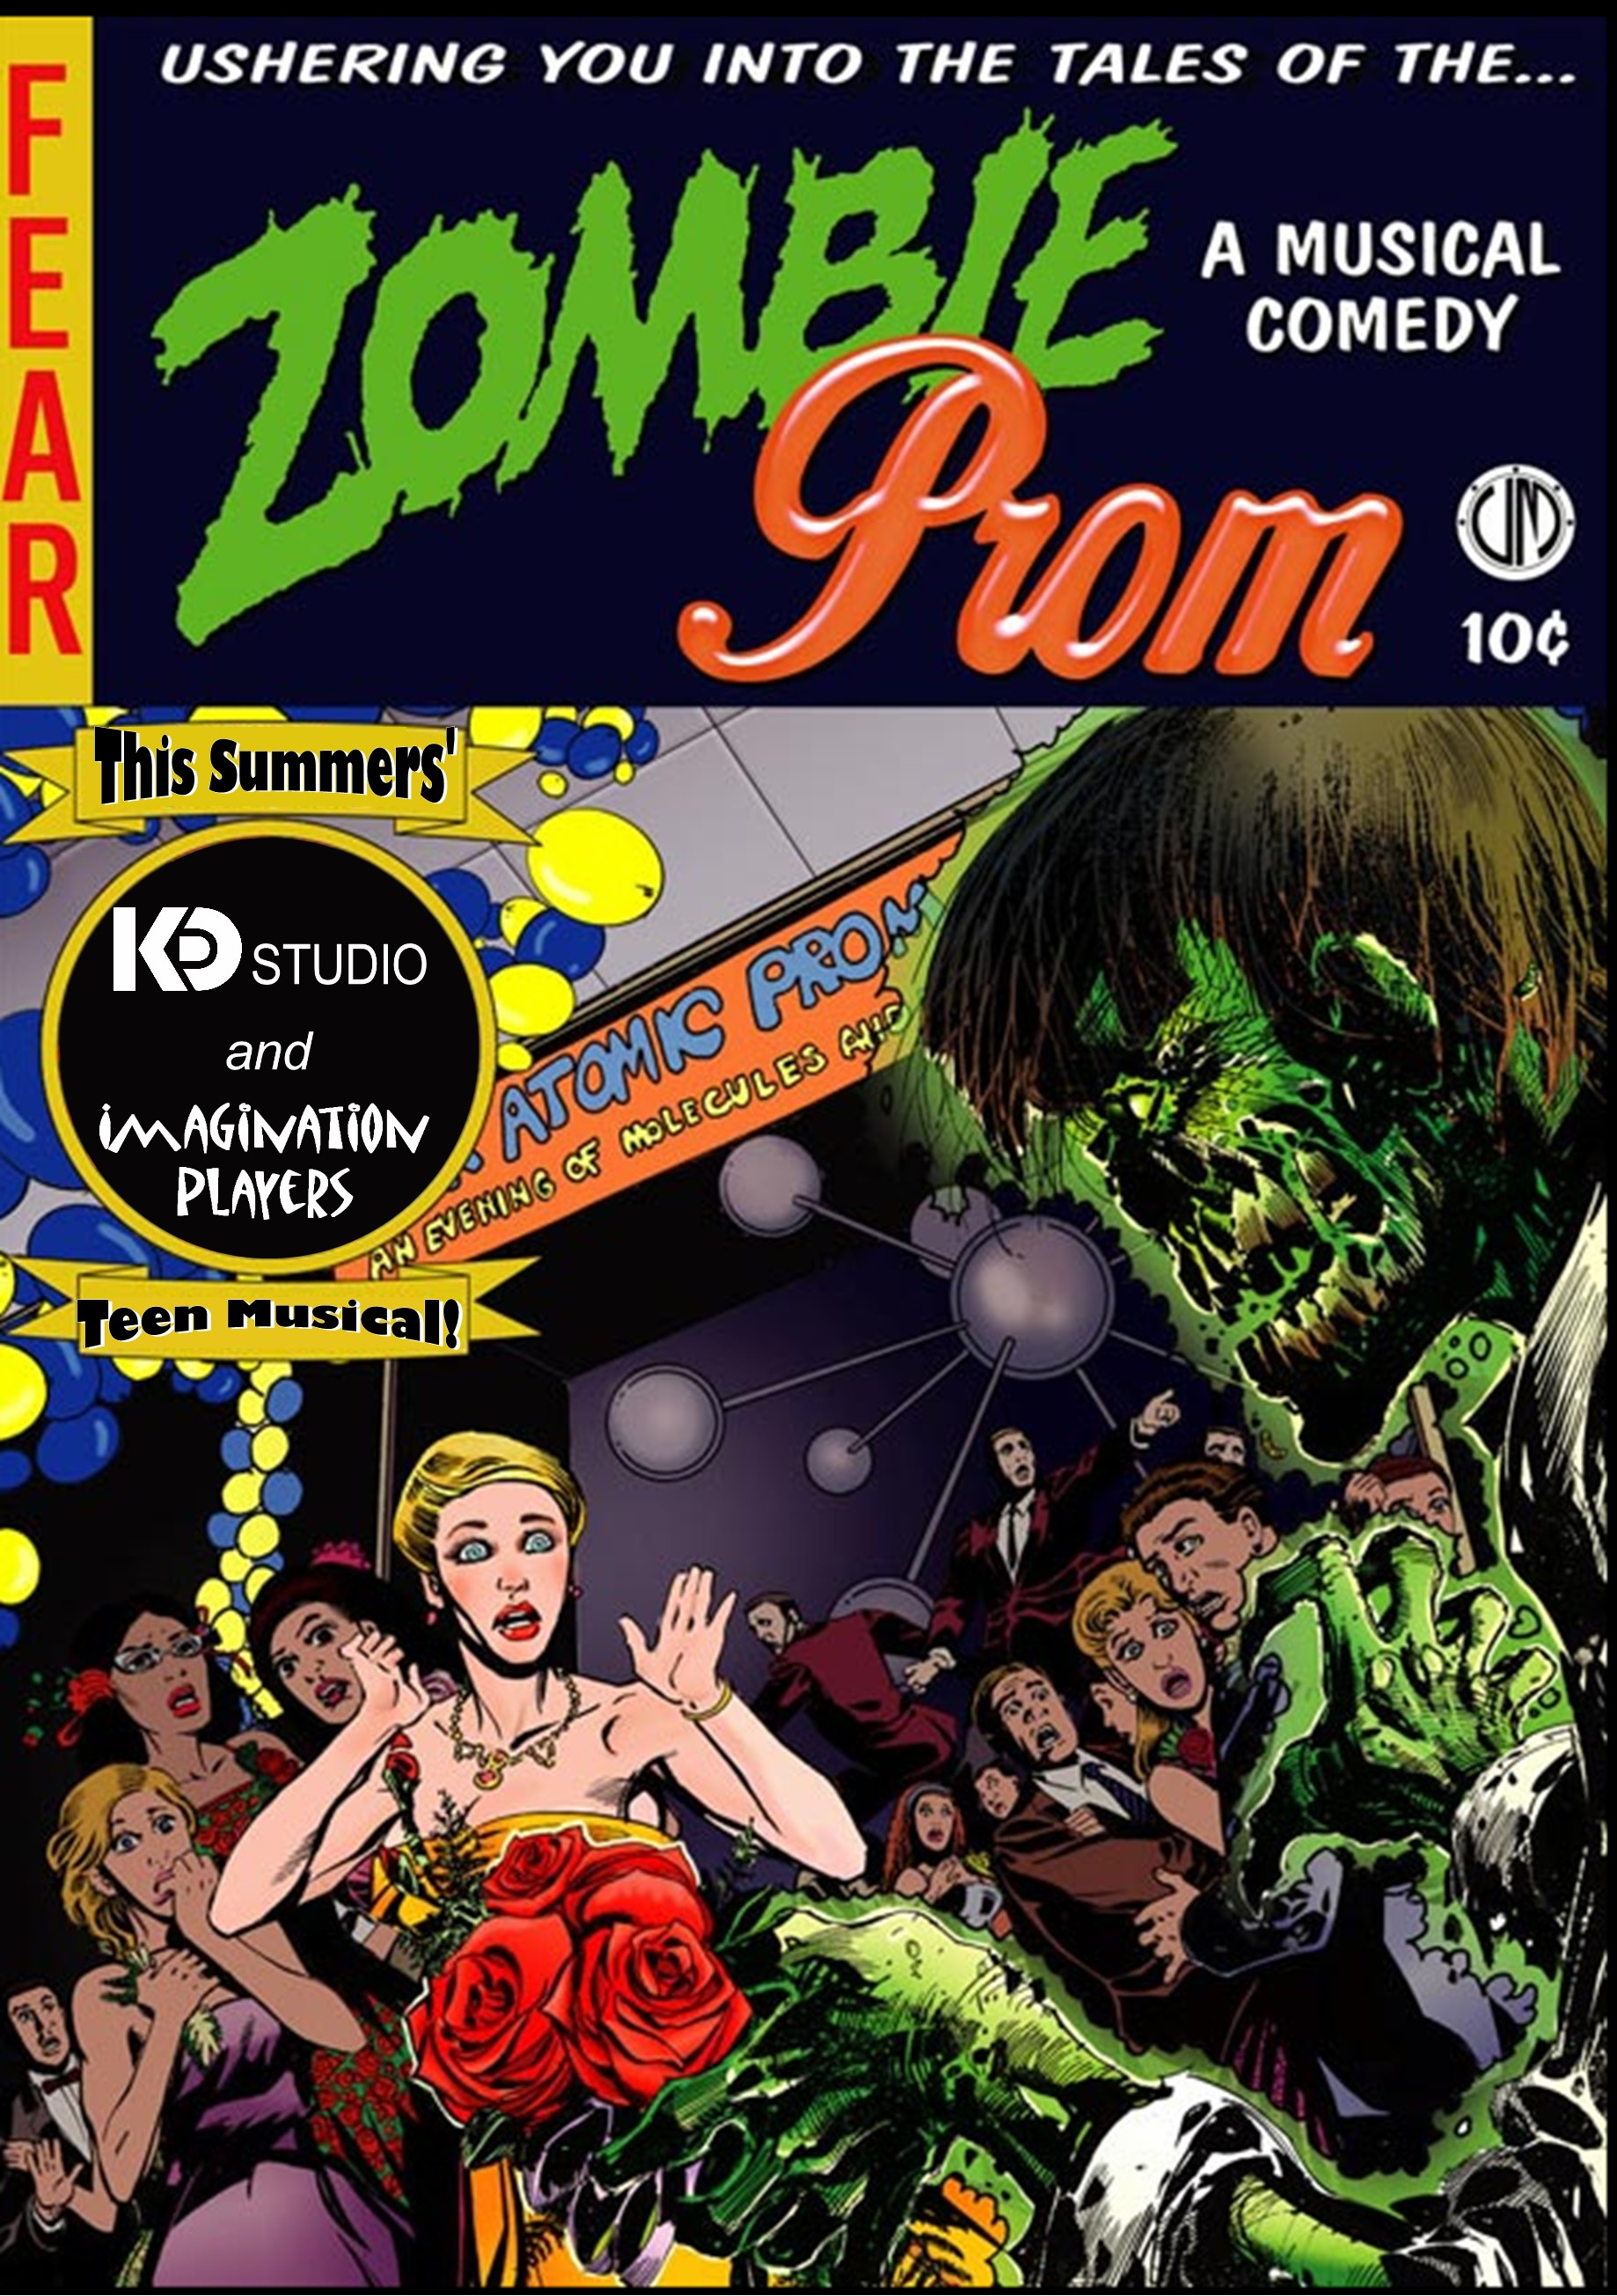 The Musicals And Films Of The 1950s, Zombie Prom Tells The Story Of A  Forbidden How